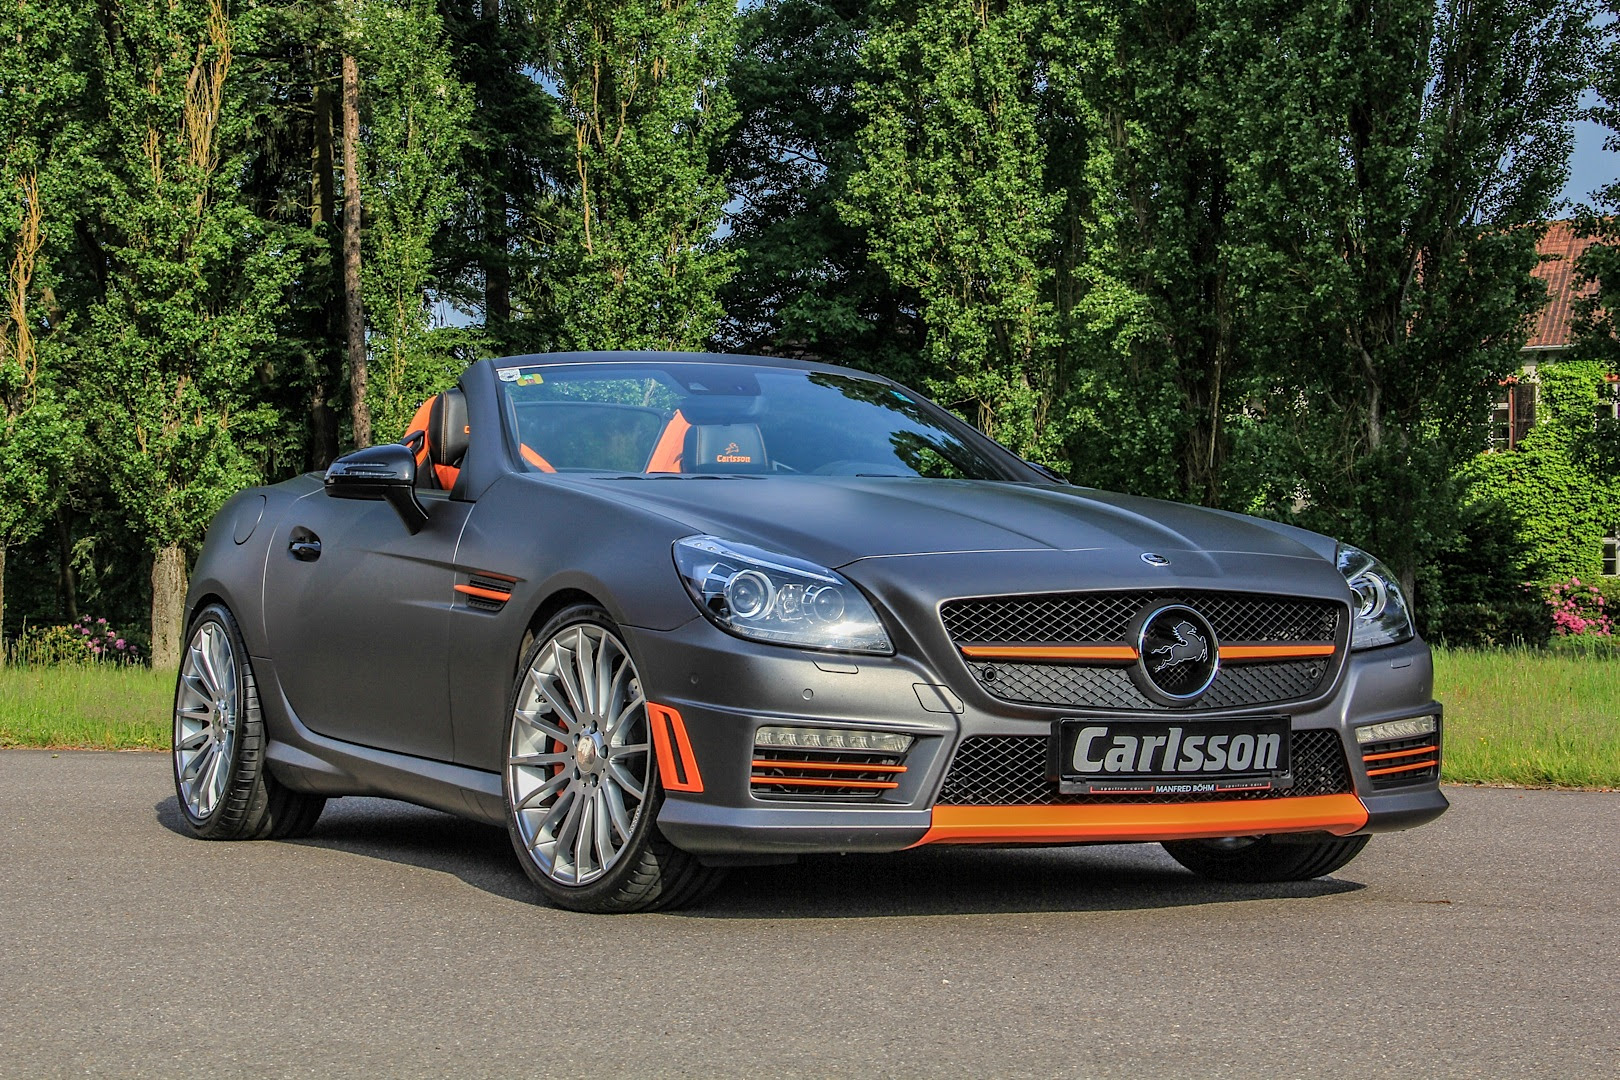 Mercedes SLK 55 AMG Gets Carlsson Interior with Orange and ...